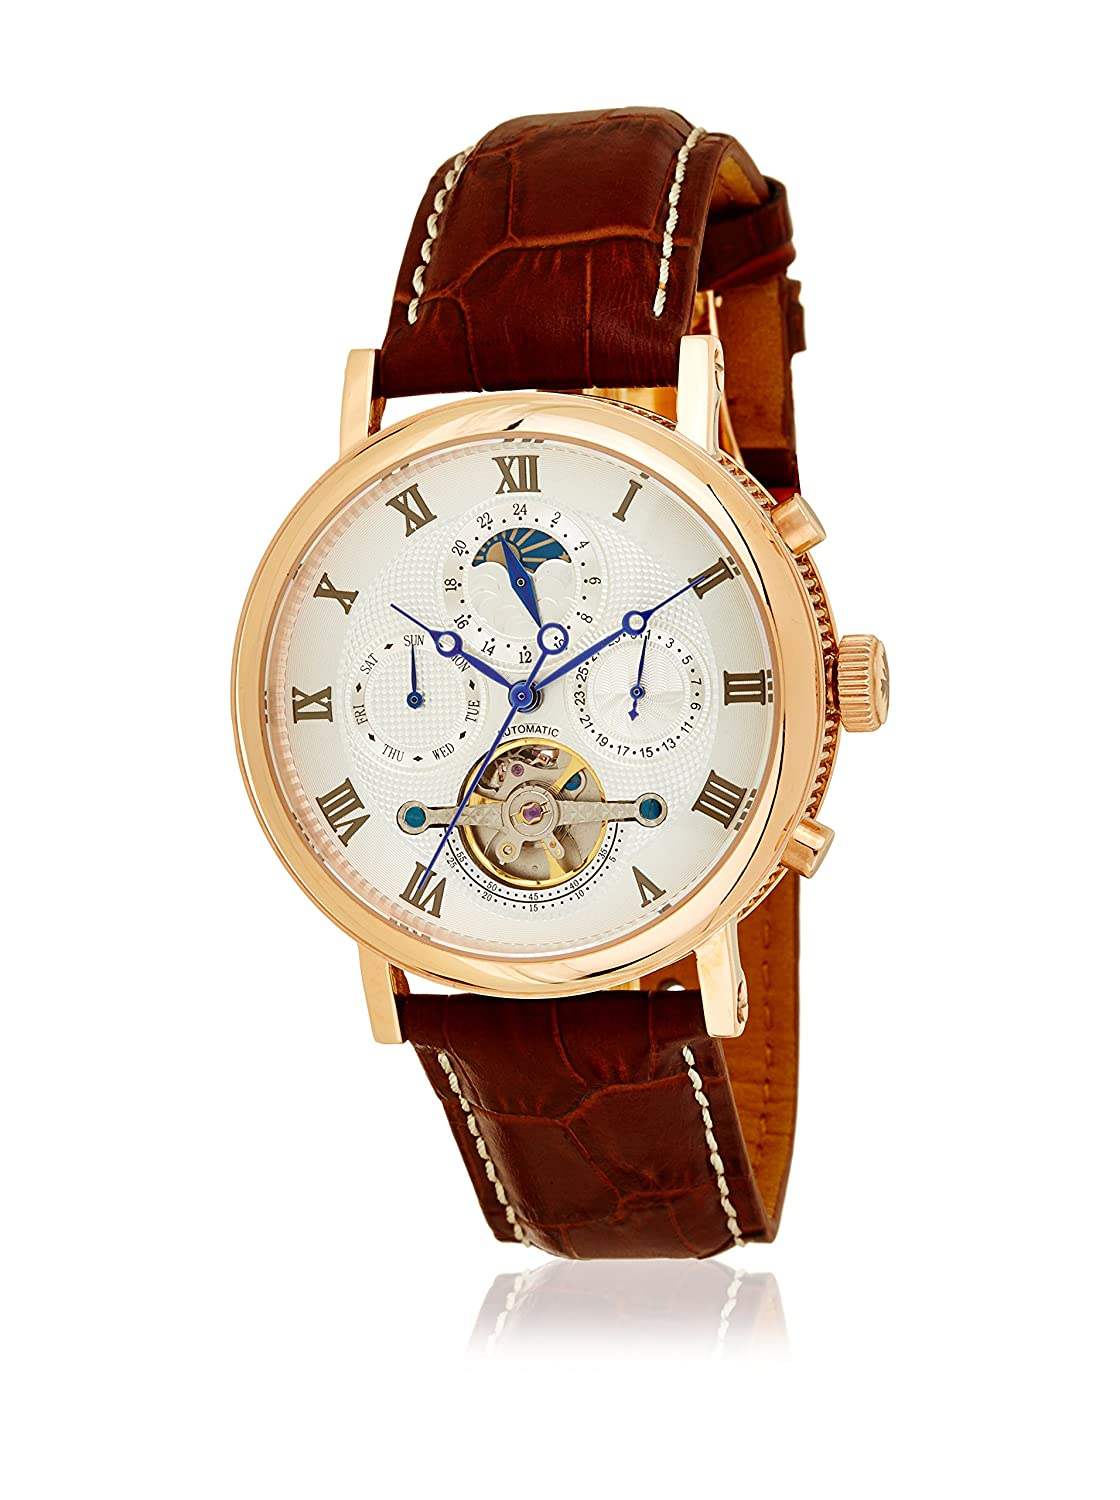 amazon co uk watch deals special offers louis cottier watch tradition automatic dial white stainless steel pvd gold pink leather strap brown men